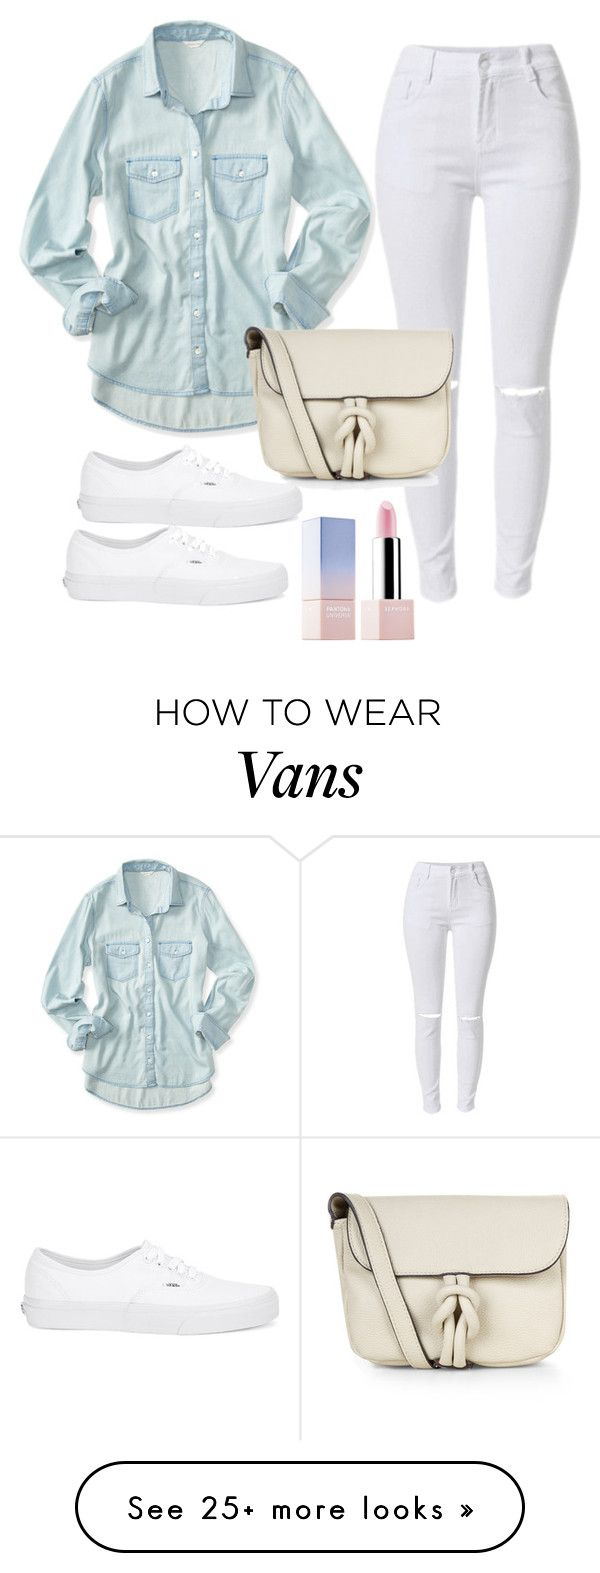 """""""pretty"""" by purplicious on Polyvore featuring Aéropostale, Vans, Monsoon, Sephora Collection, women's clothing, women's fashion, women, female, woman and misses"""